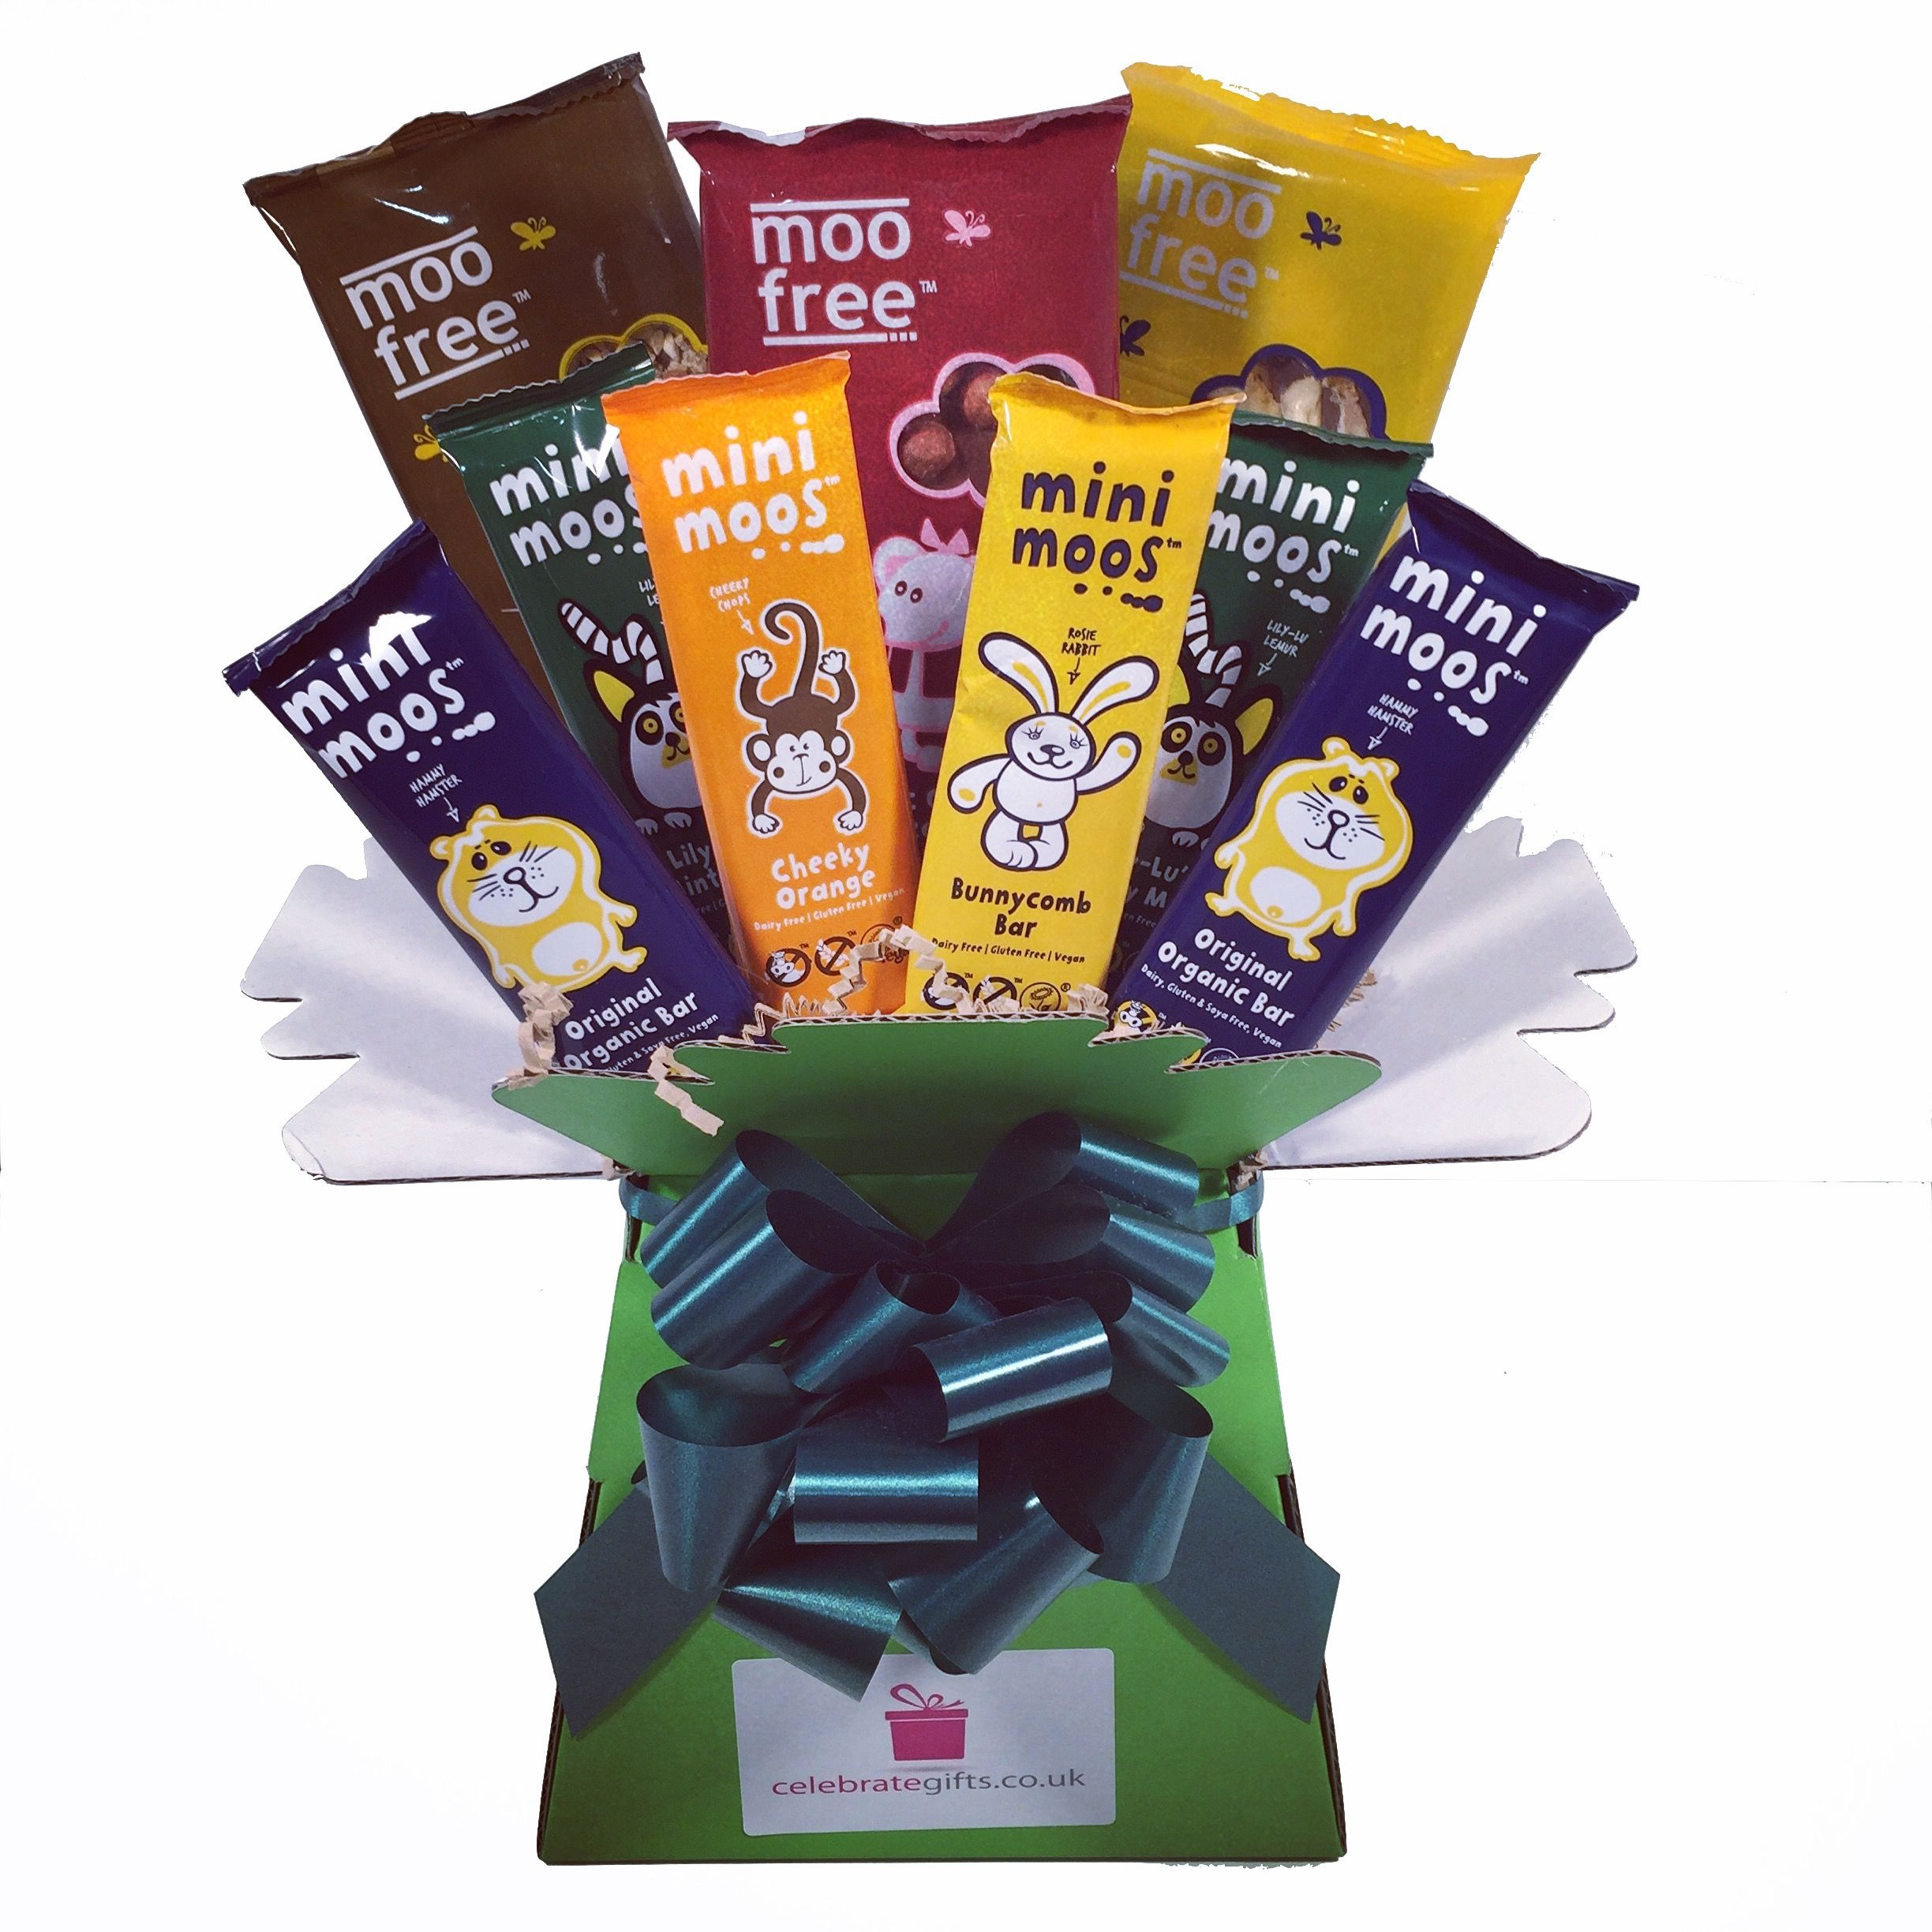 Pin by celebrate gifts ltd on chocolate bouquets pinterest description this chocolate bouquet is gluten free dairy free wheat free soya free organic and suitable for vegans negle Images